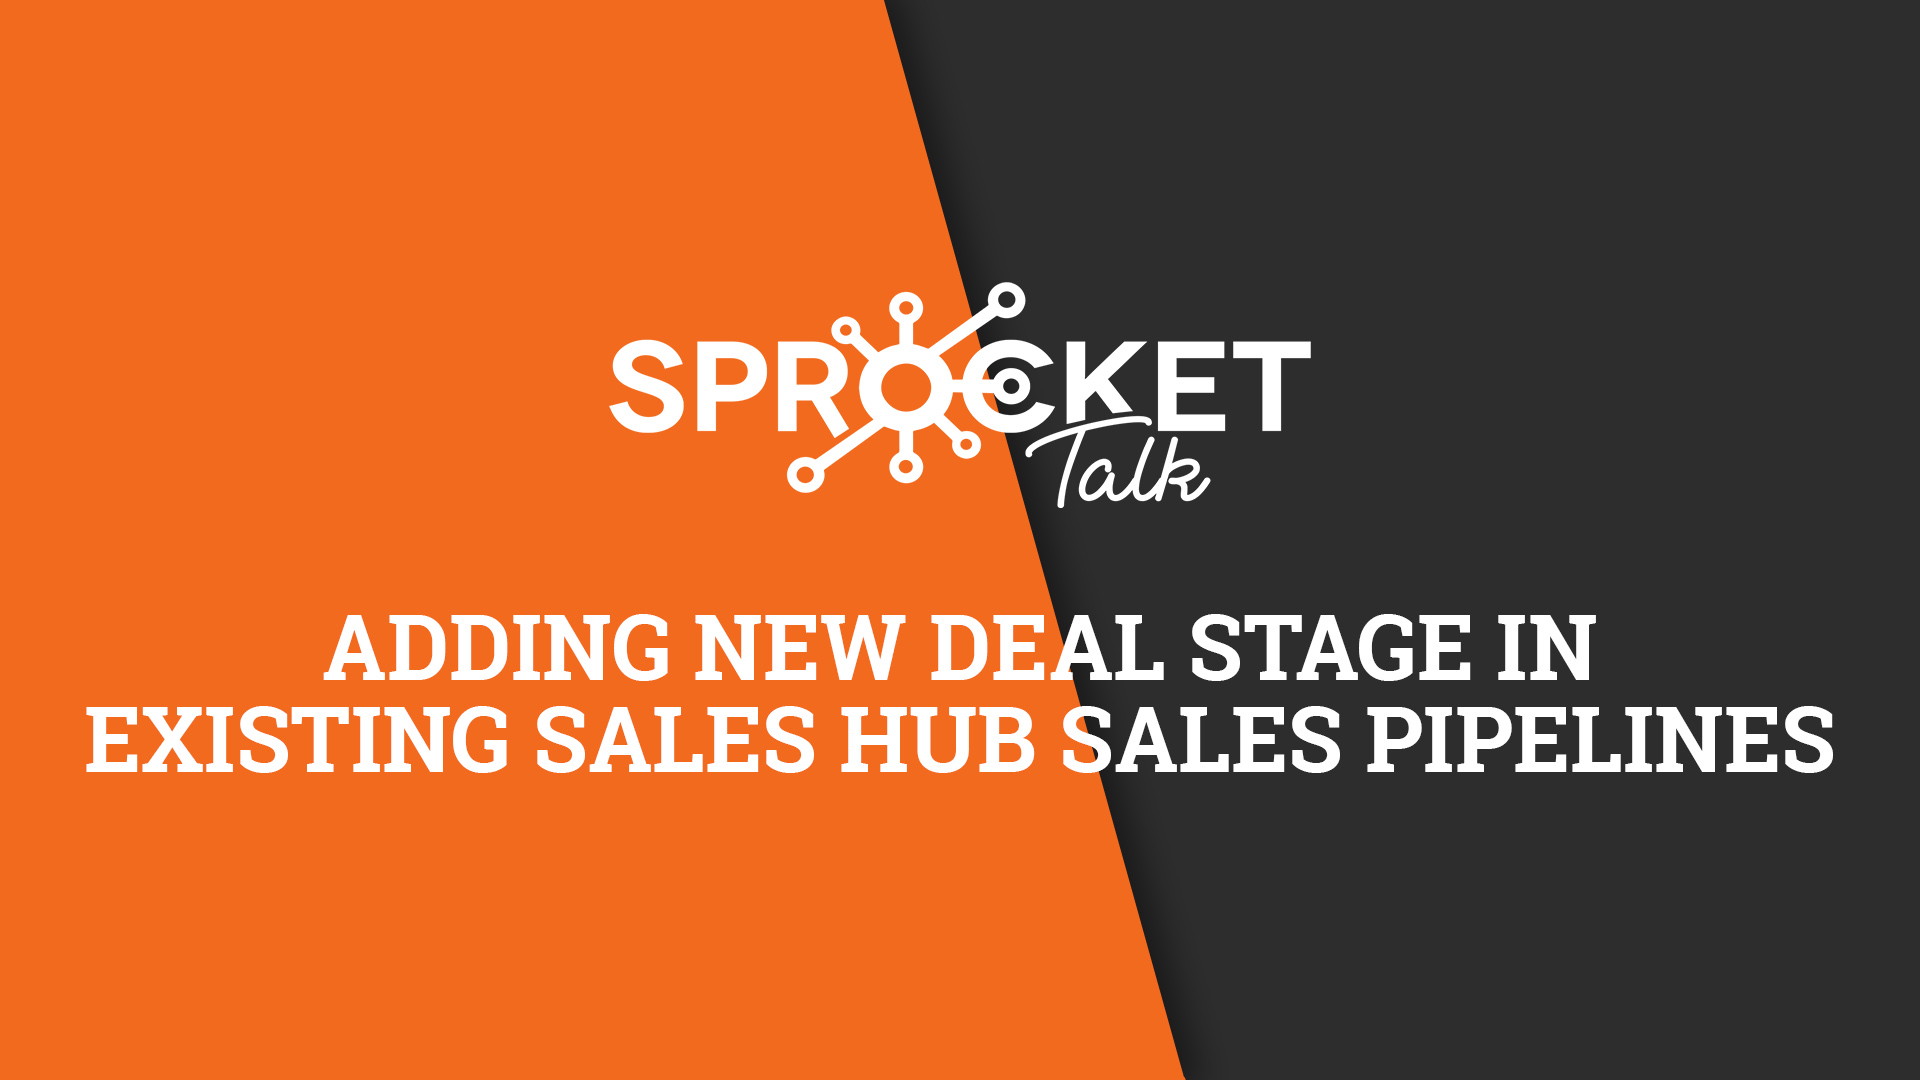 Adding New Deal Stage in Existing Sales Hub Sales Pipelines